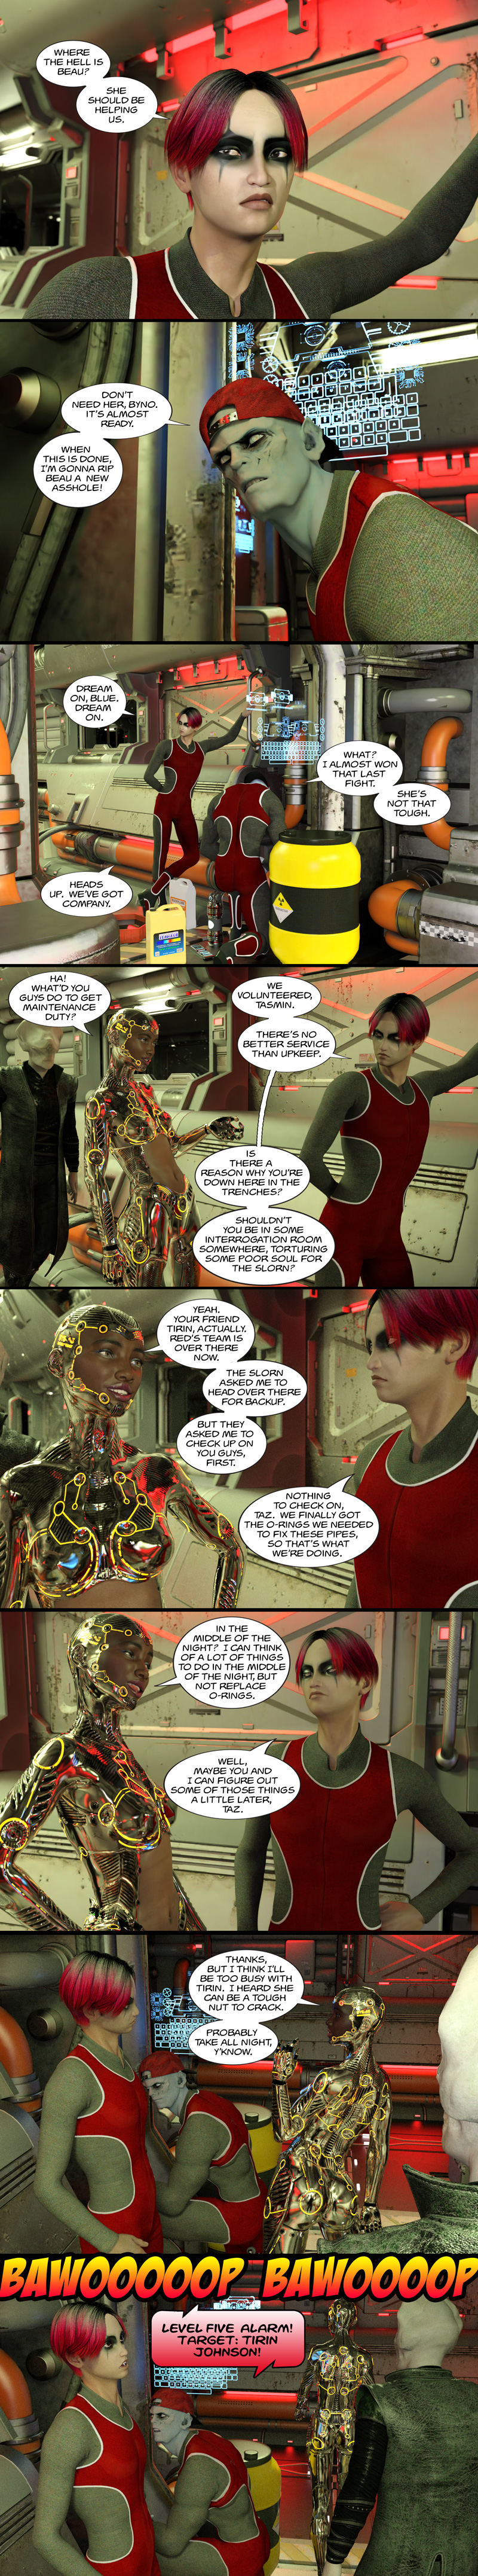 Chapter 13, page 30 – Byno and Blue move forward with Tirin's plan